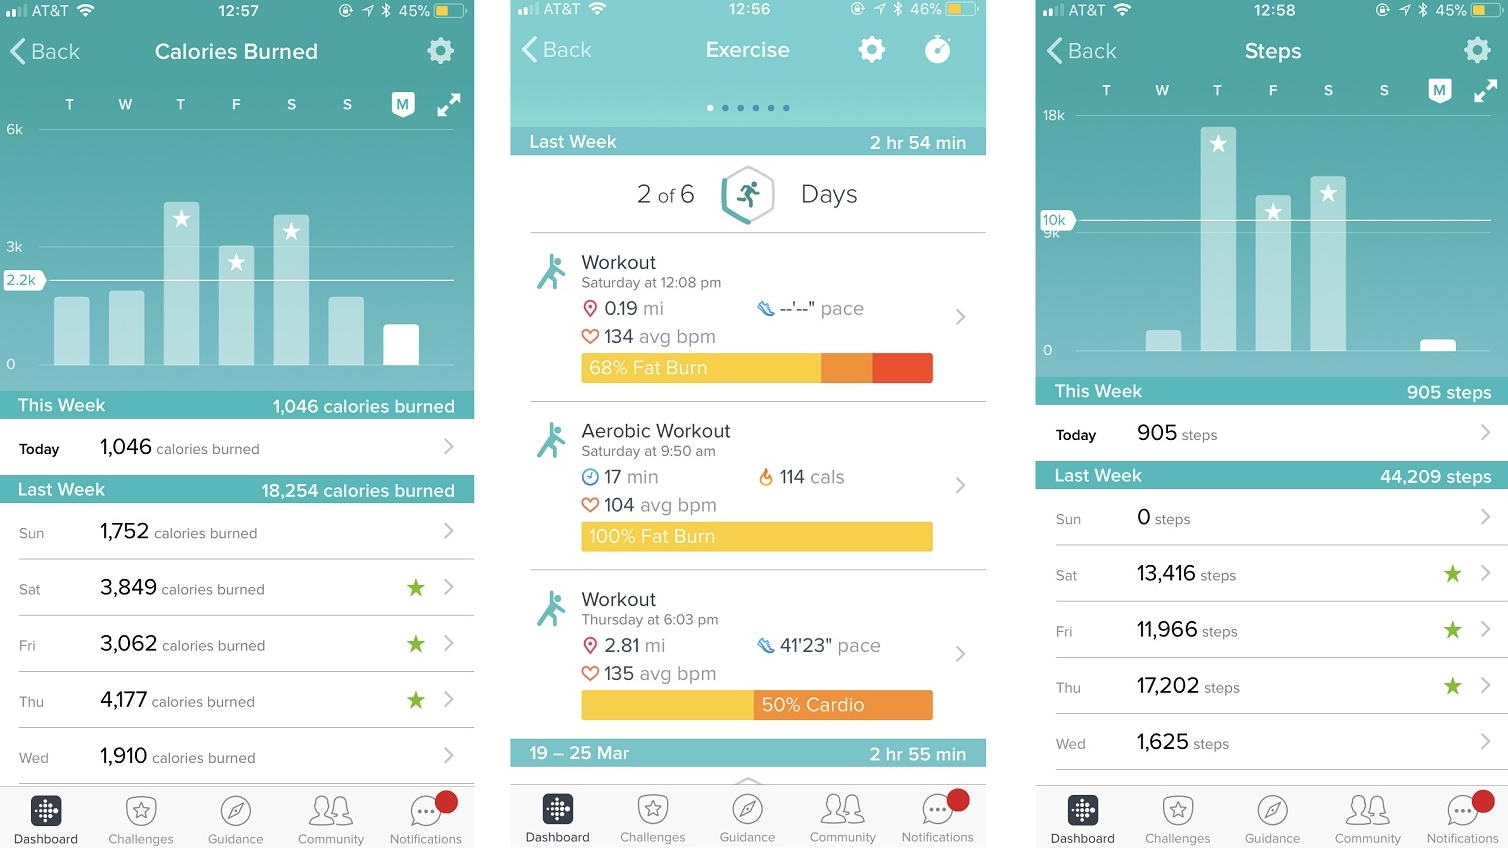 The main Fitbit app dashboard presents all the data collected for each day, from food and water intake to the number of steps taken